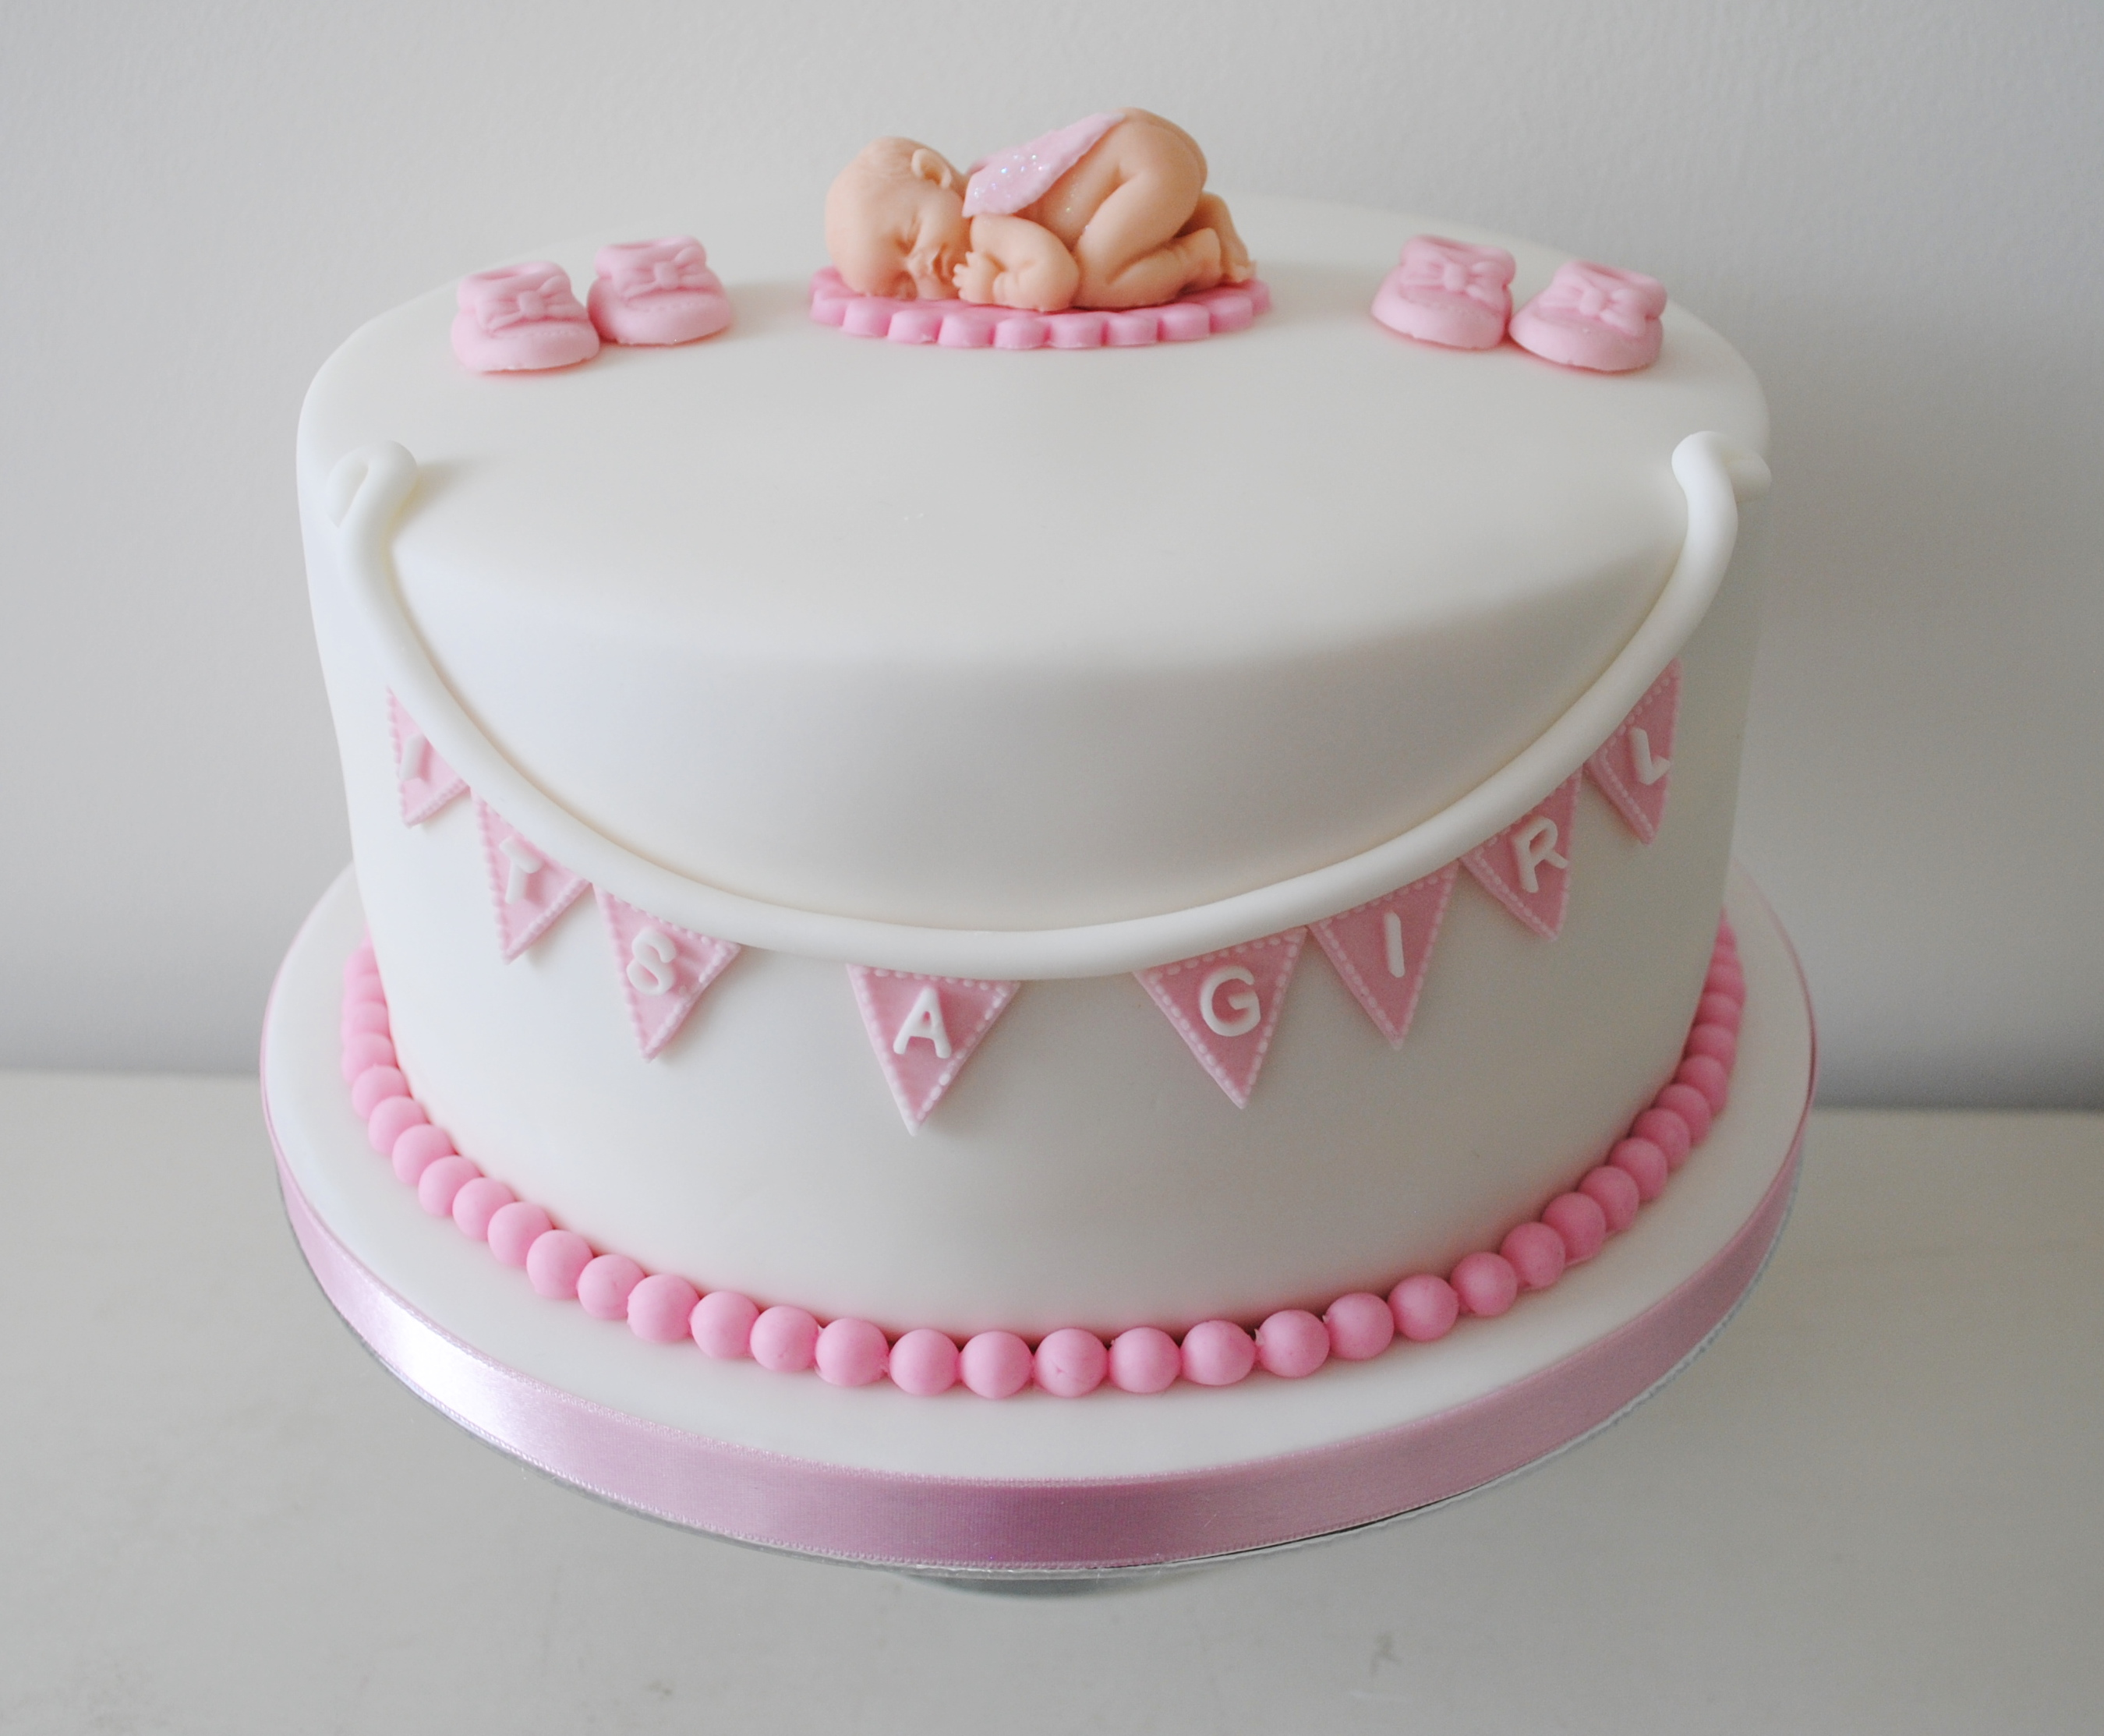 Cake Design Baby Shower Girl : Miss Cupcakes  Blog Archive   Its a girl Baby shower cake